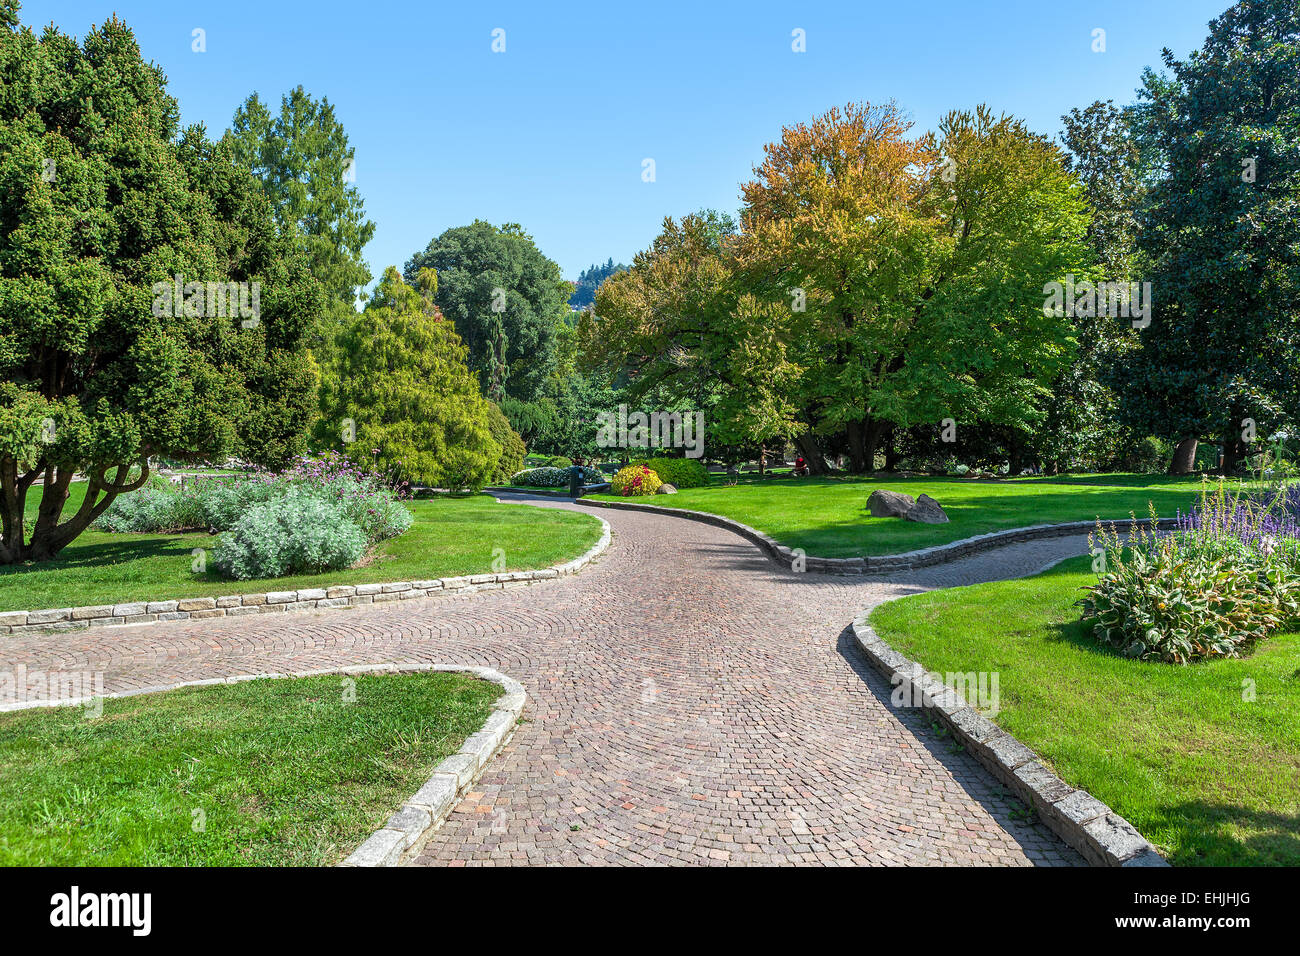 Paved walkway among green lawns and lush trees of Valentino Park in Turin, Italy. - Stock Image